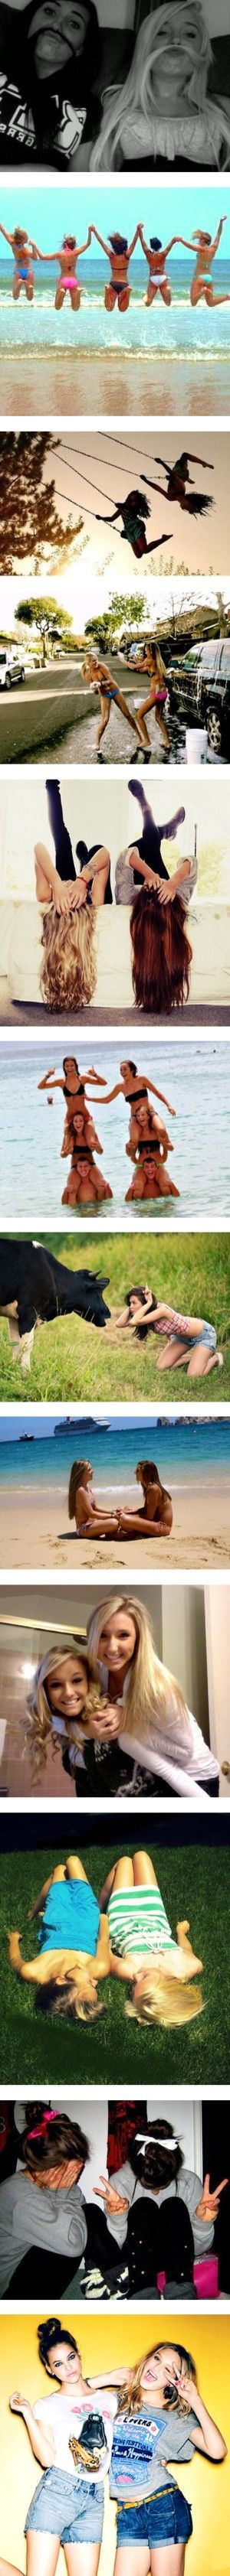 Best Friend poses! CUTE more funny pics on facebook: https://www.facebook.com/yourfunnypics101